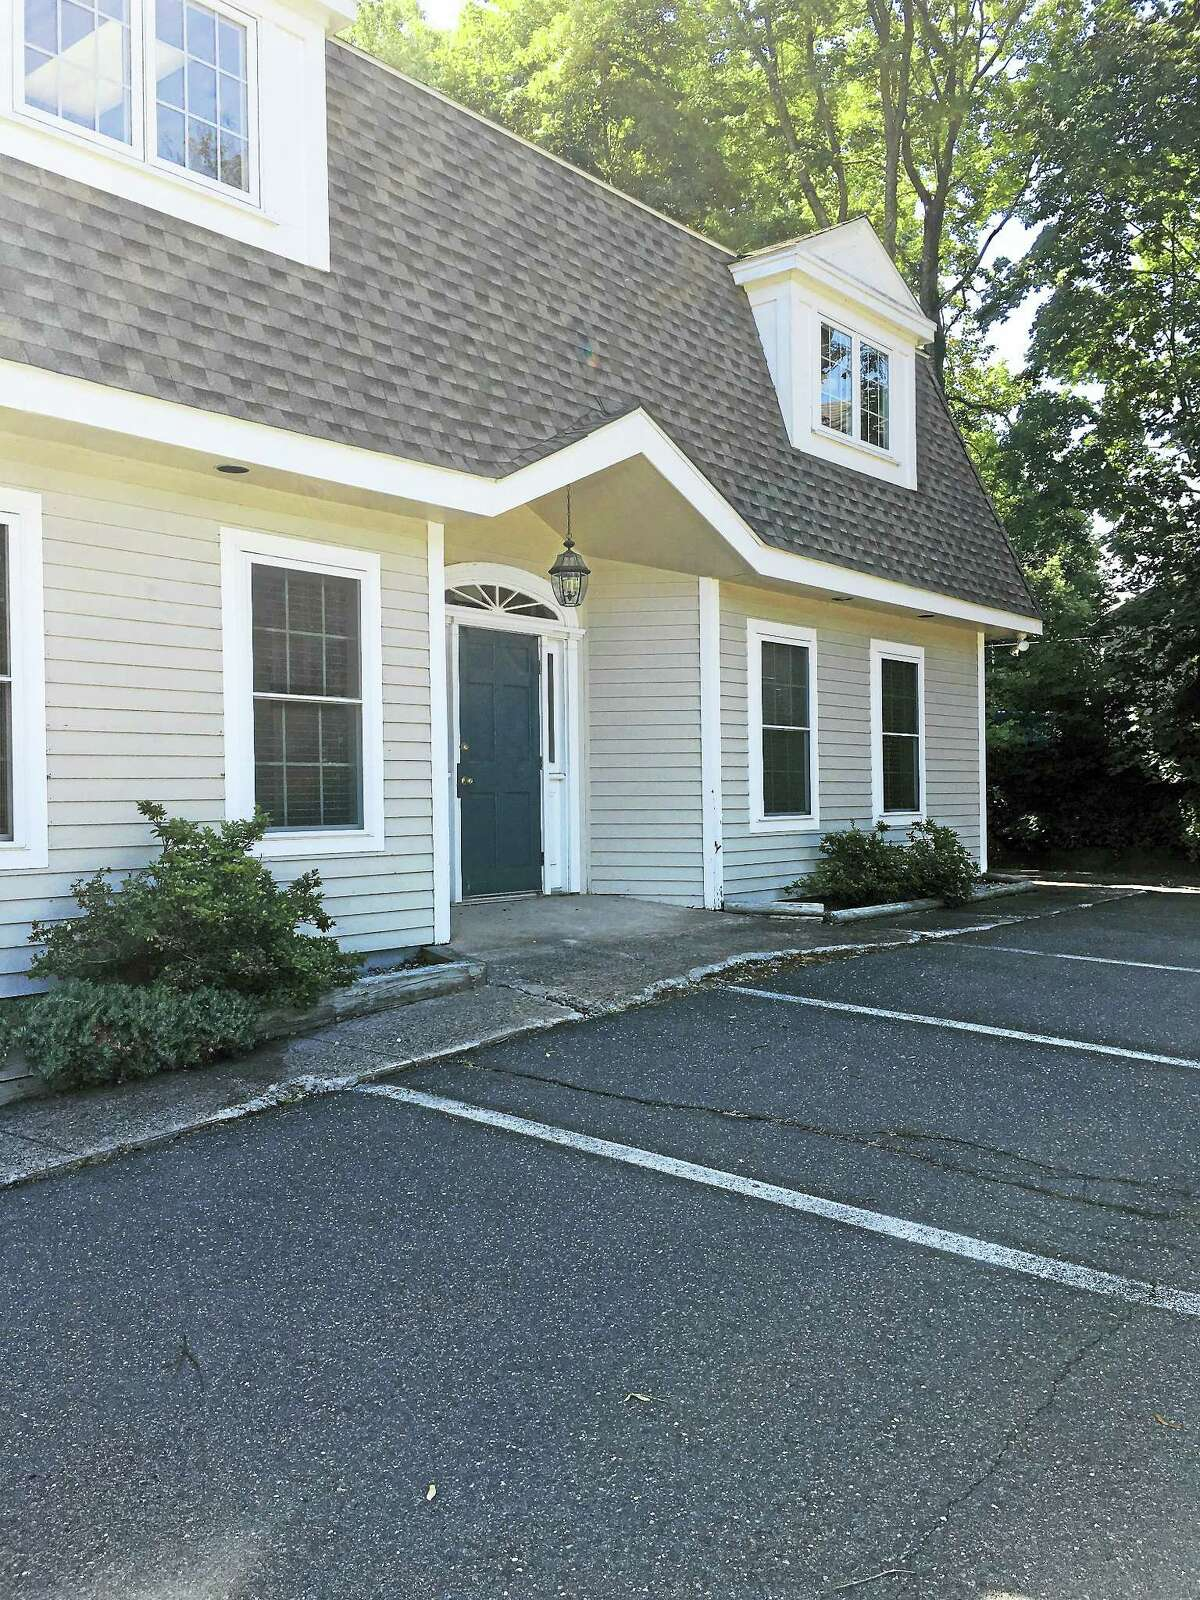 The property at 272 S.Main St., Middletown, will soon open as the American Job Center, offering a variety of career services in the city.